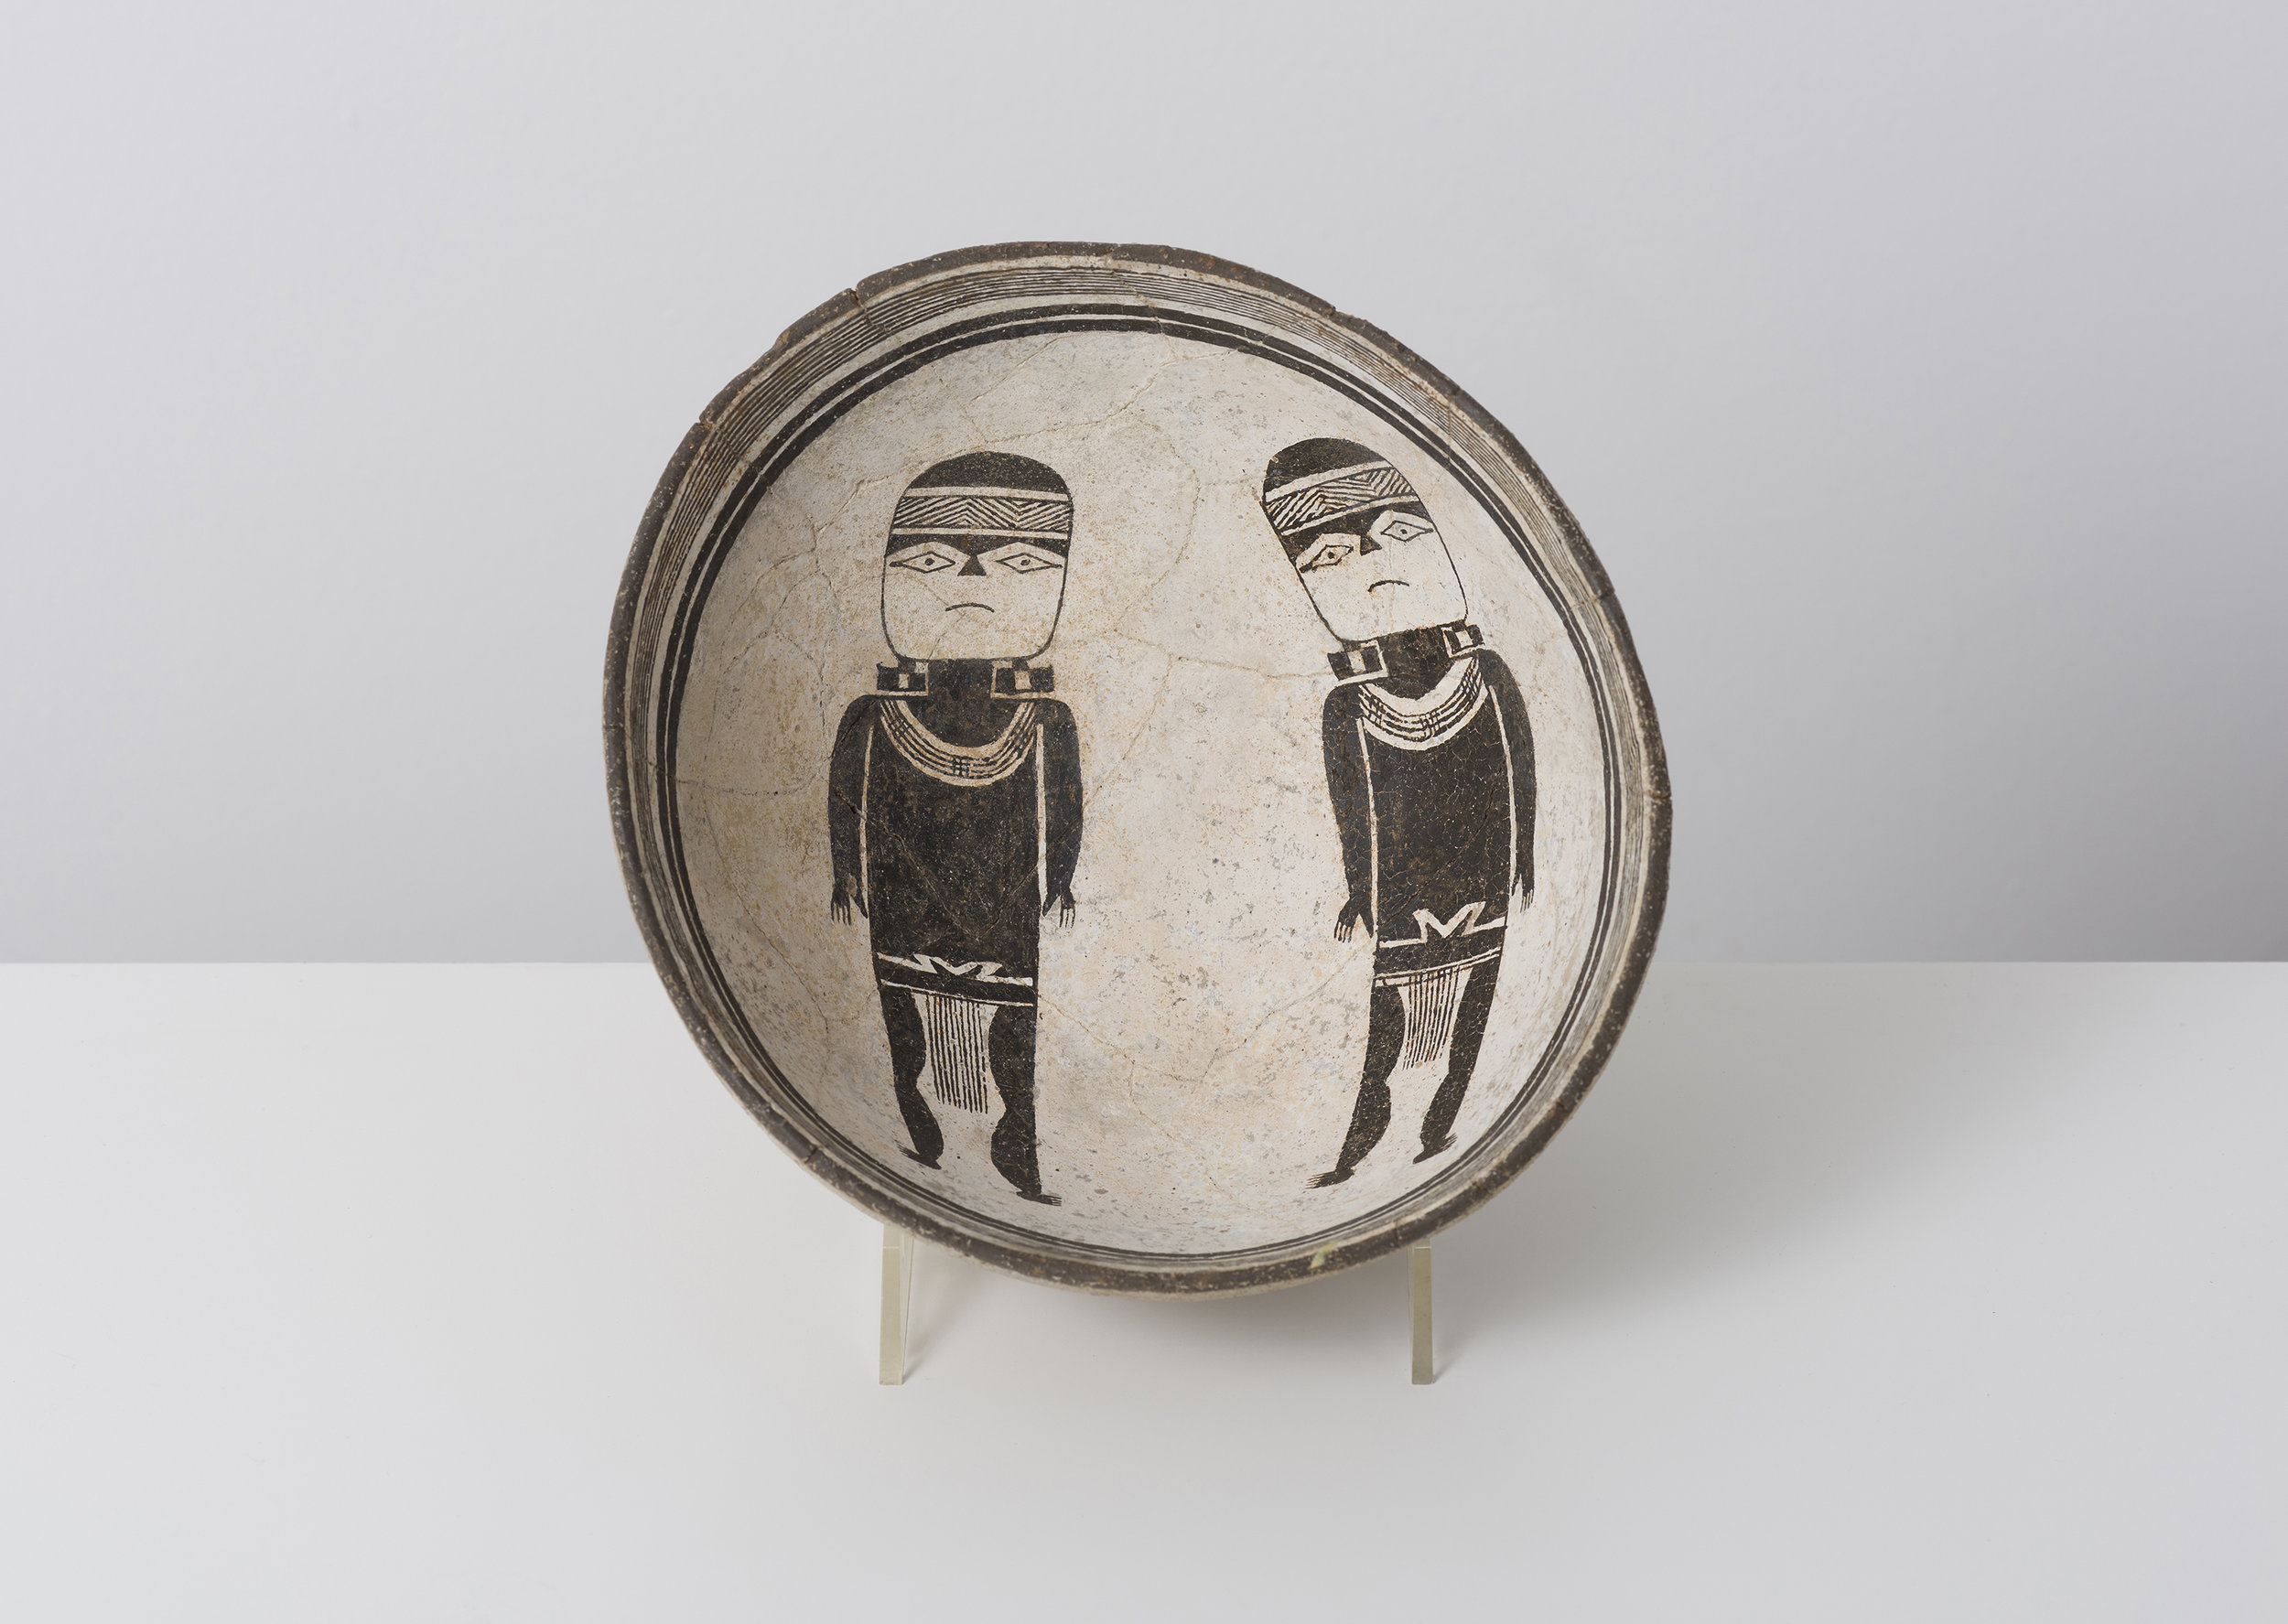 Classic Mimbres Black-on-white  Warrior twins c. 900 - 1000 CE Painted ceramic 6 inches diameter, 3 inches depth